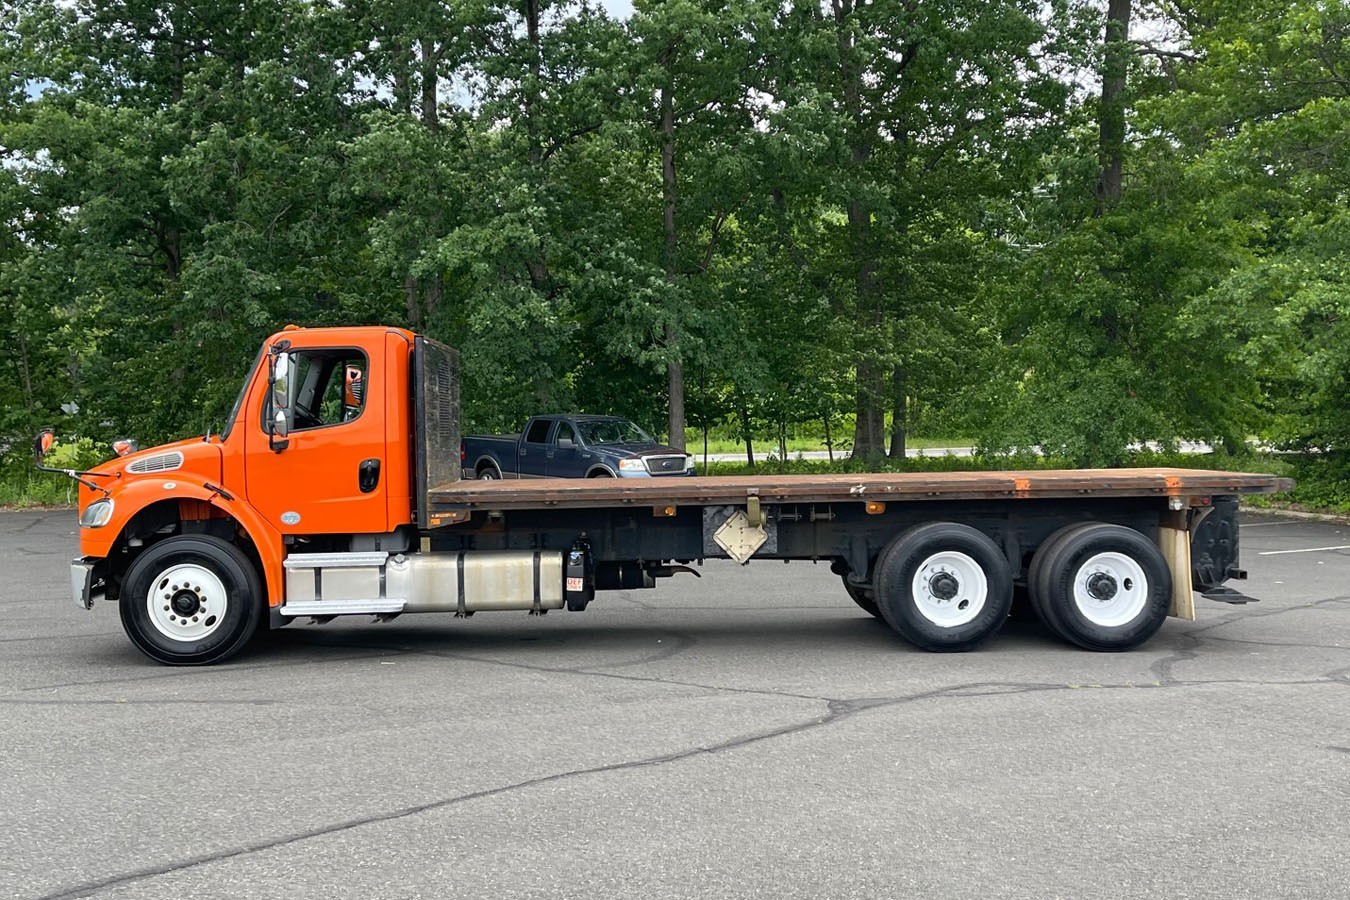 Used, 2016, Other, FREIGHTLINER M2-106: 22' STEEL FLATBED W/ MOFFETT PIGGYBACK SETUP, Other